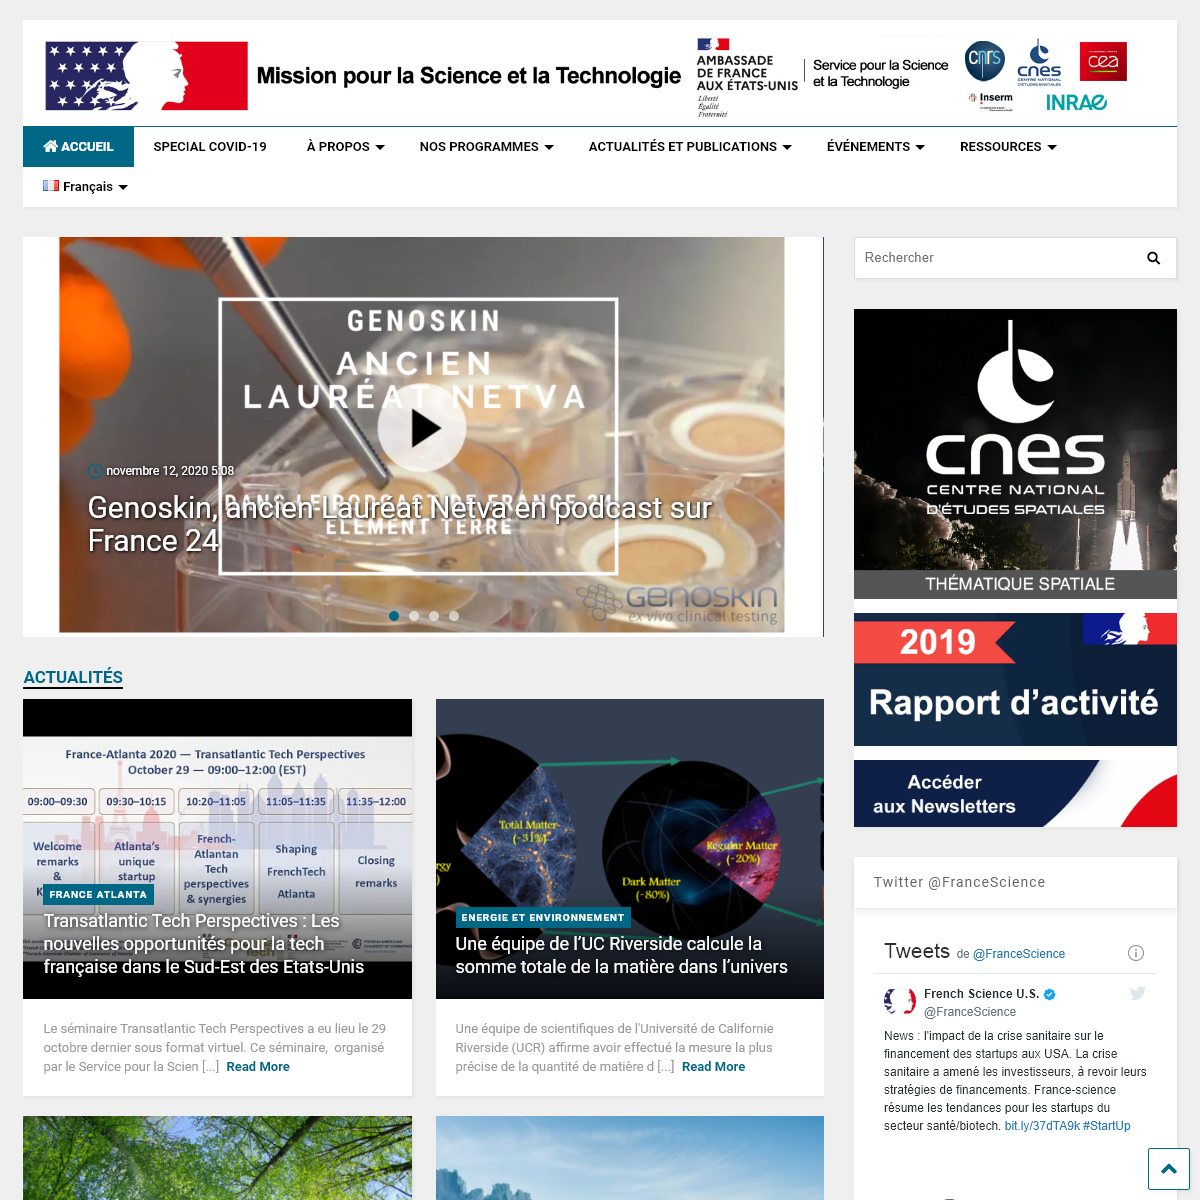 France-Science – Office for Science & Technology of the Embassy of France in the United States